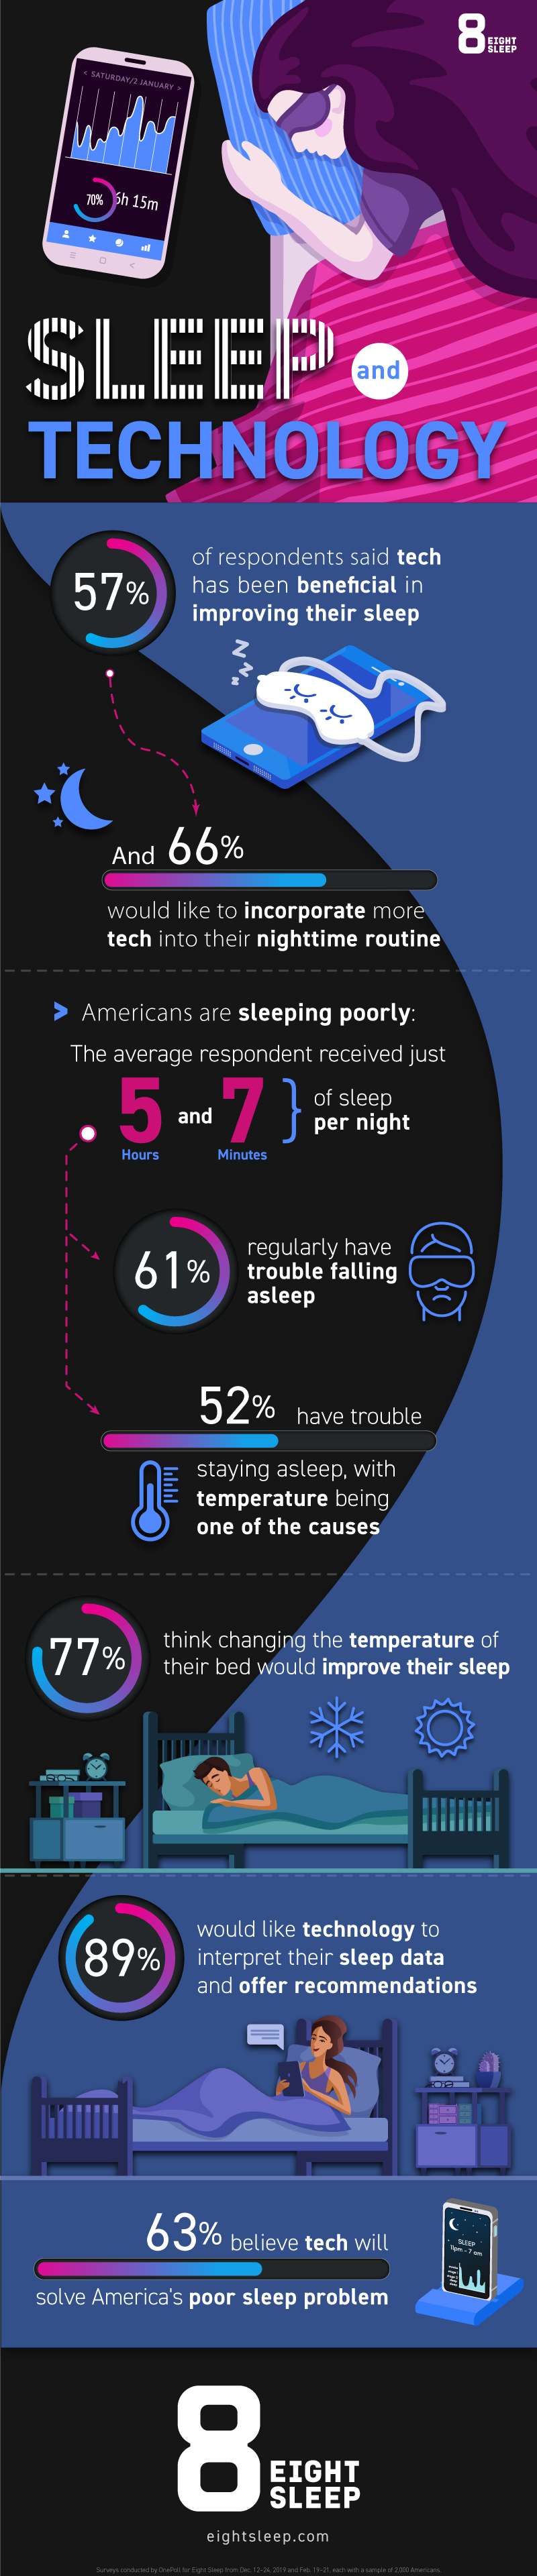 Infographic Americans avor technology in quest for better sleep